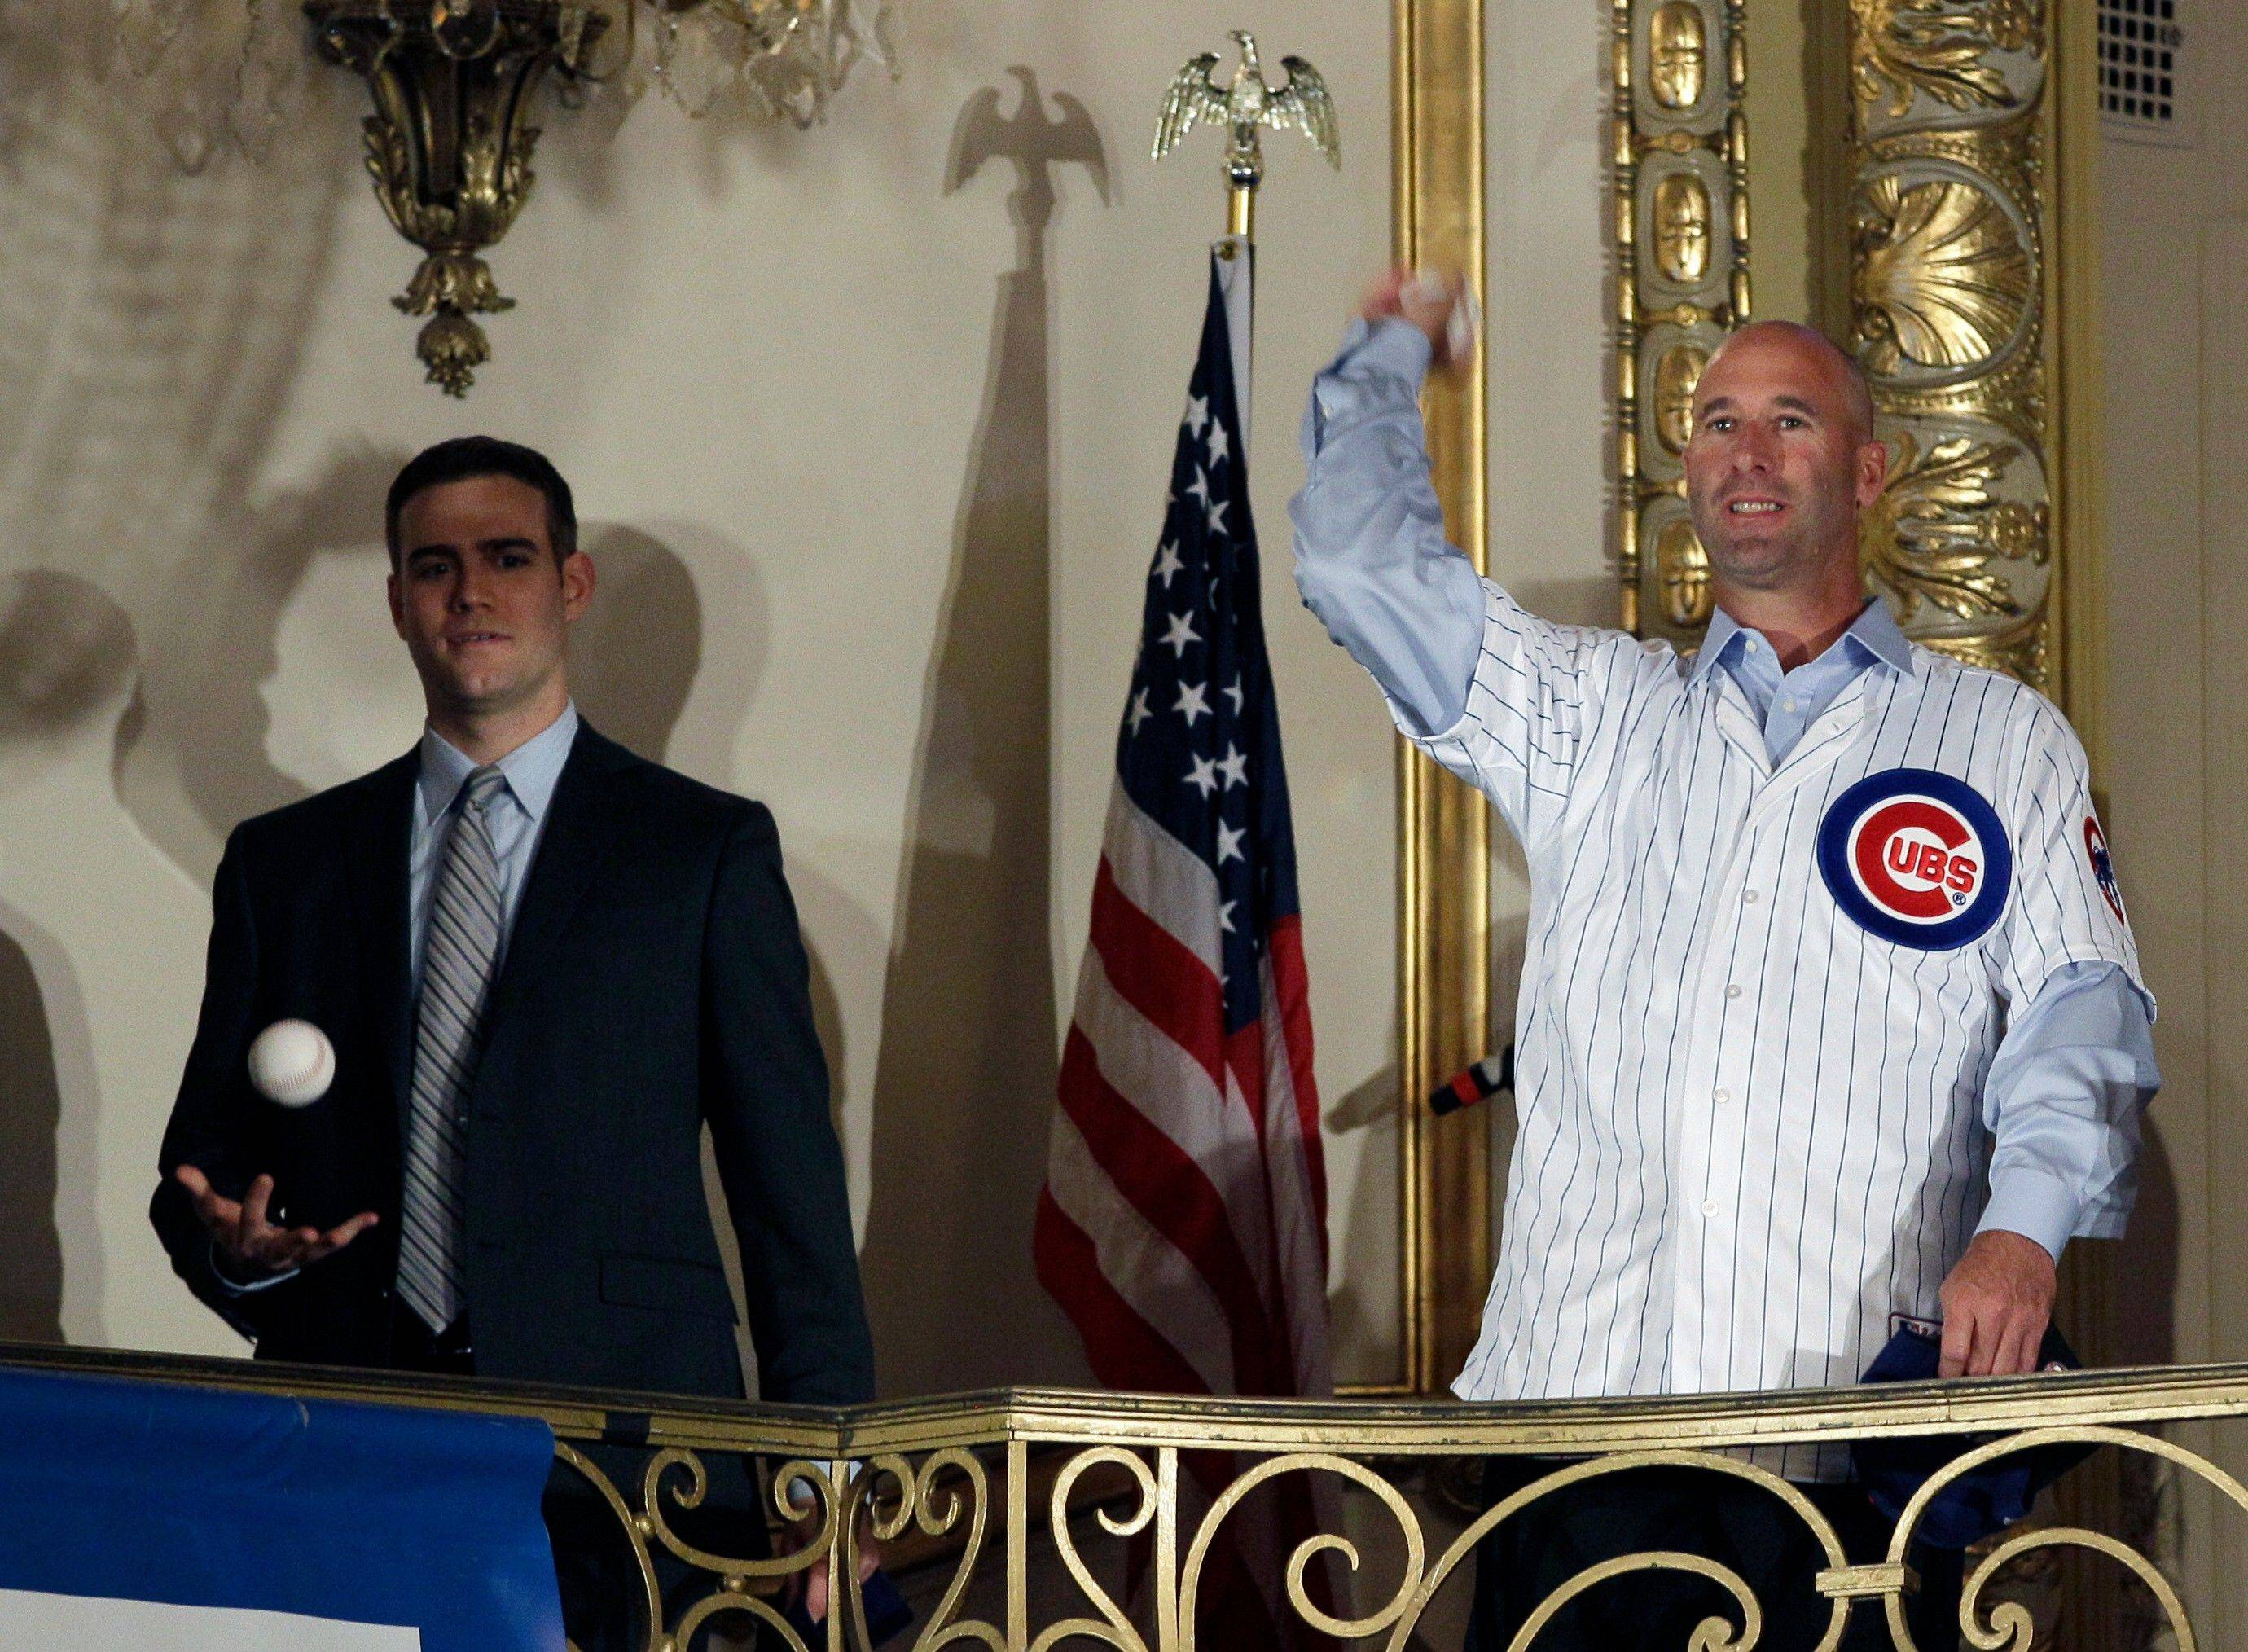 Chicago Cubs new manager Dale Sveum, right, throws out a ceremonial first pitch as Theo Epstein, president of baseball operations, plays with a ball during the 27th Annual Chicago Cubs Convention in Chicago on Friday, Jan. 13, 2012.